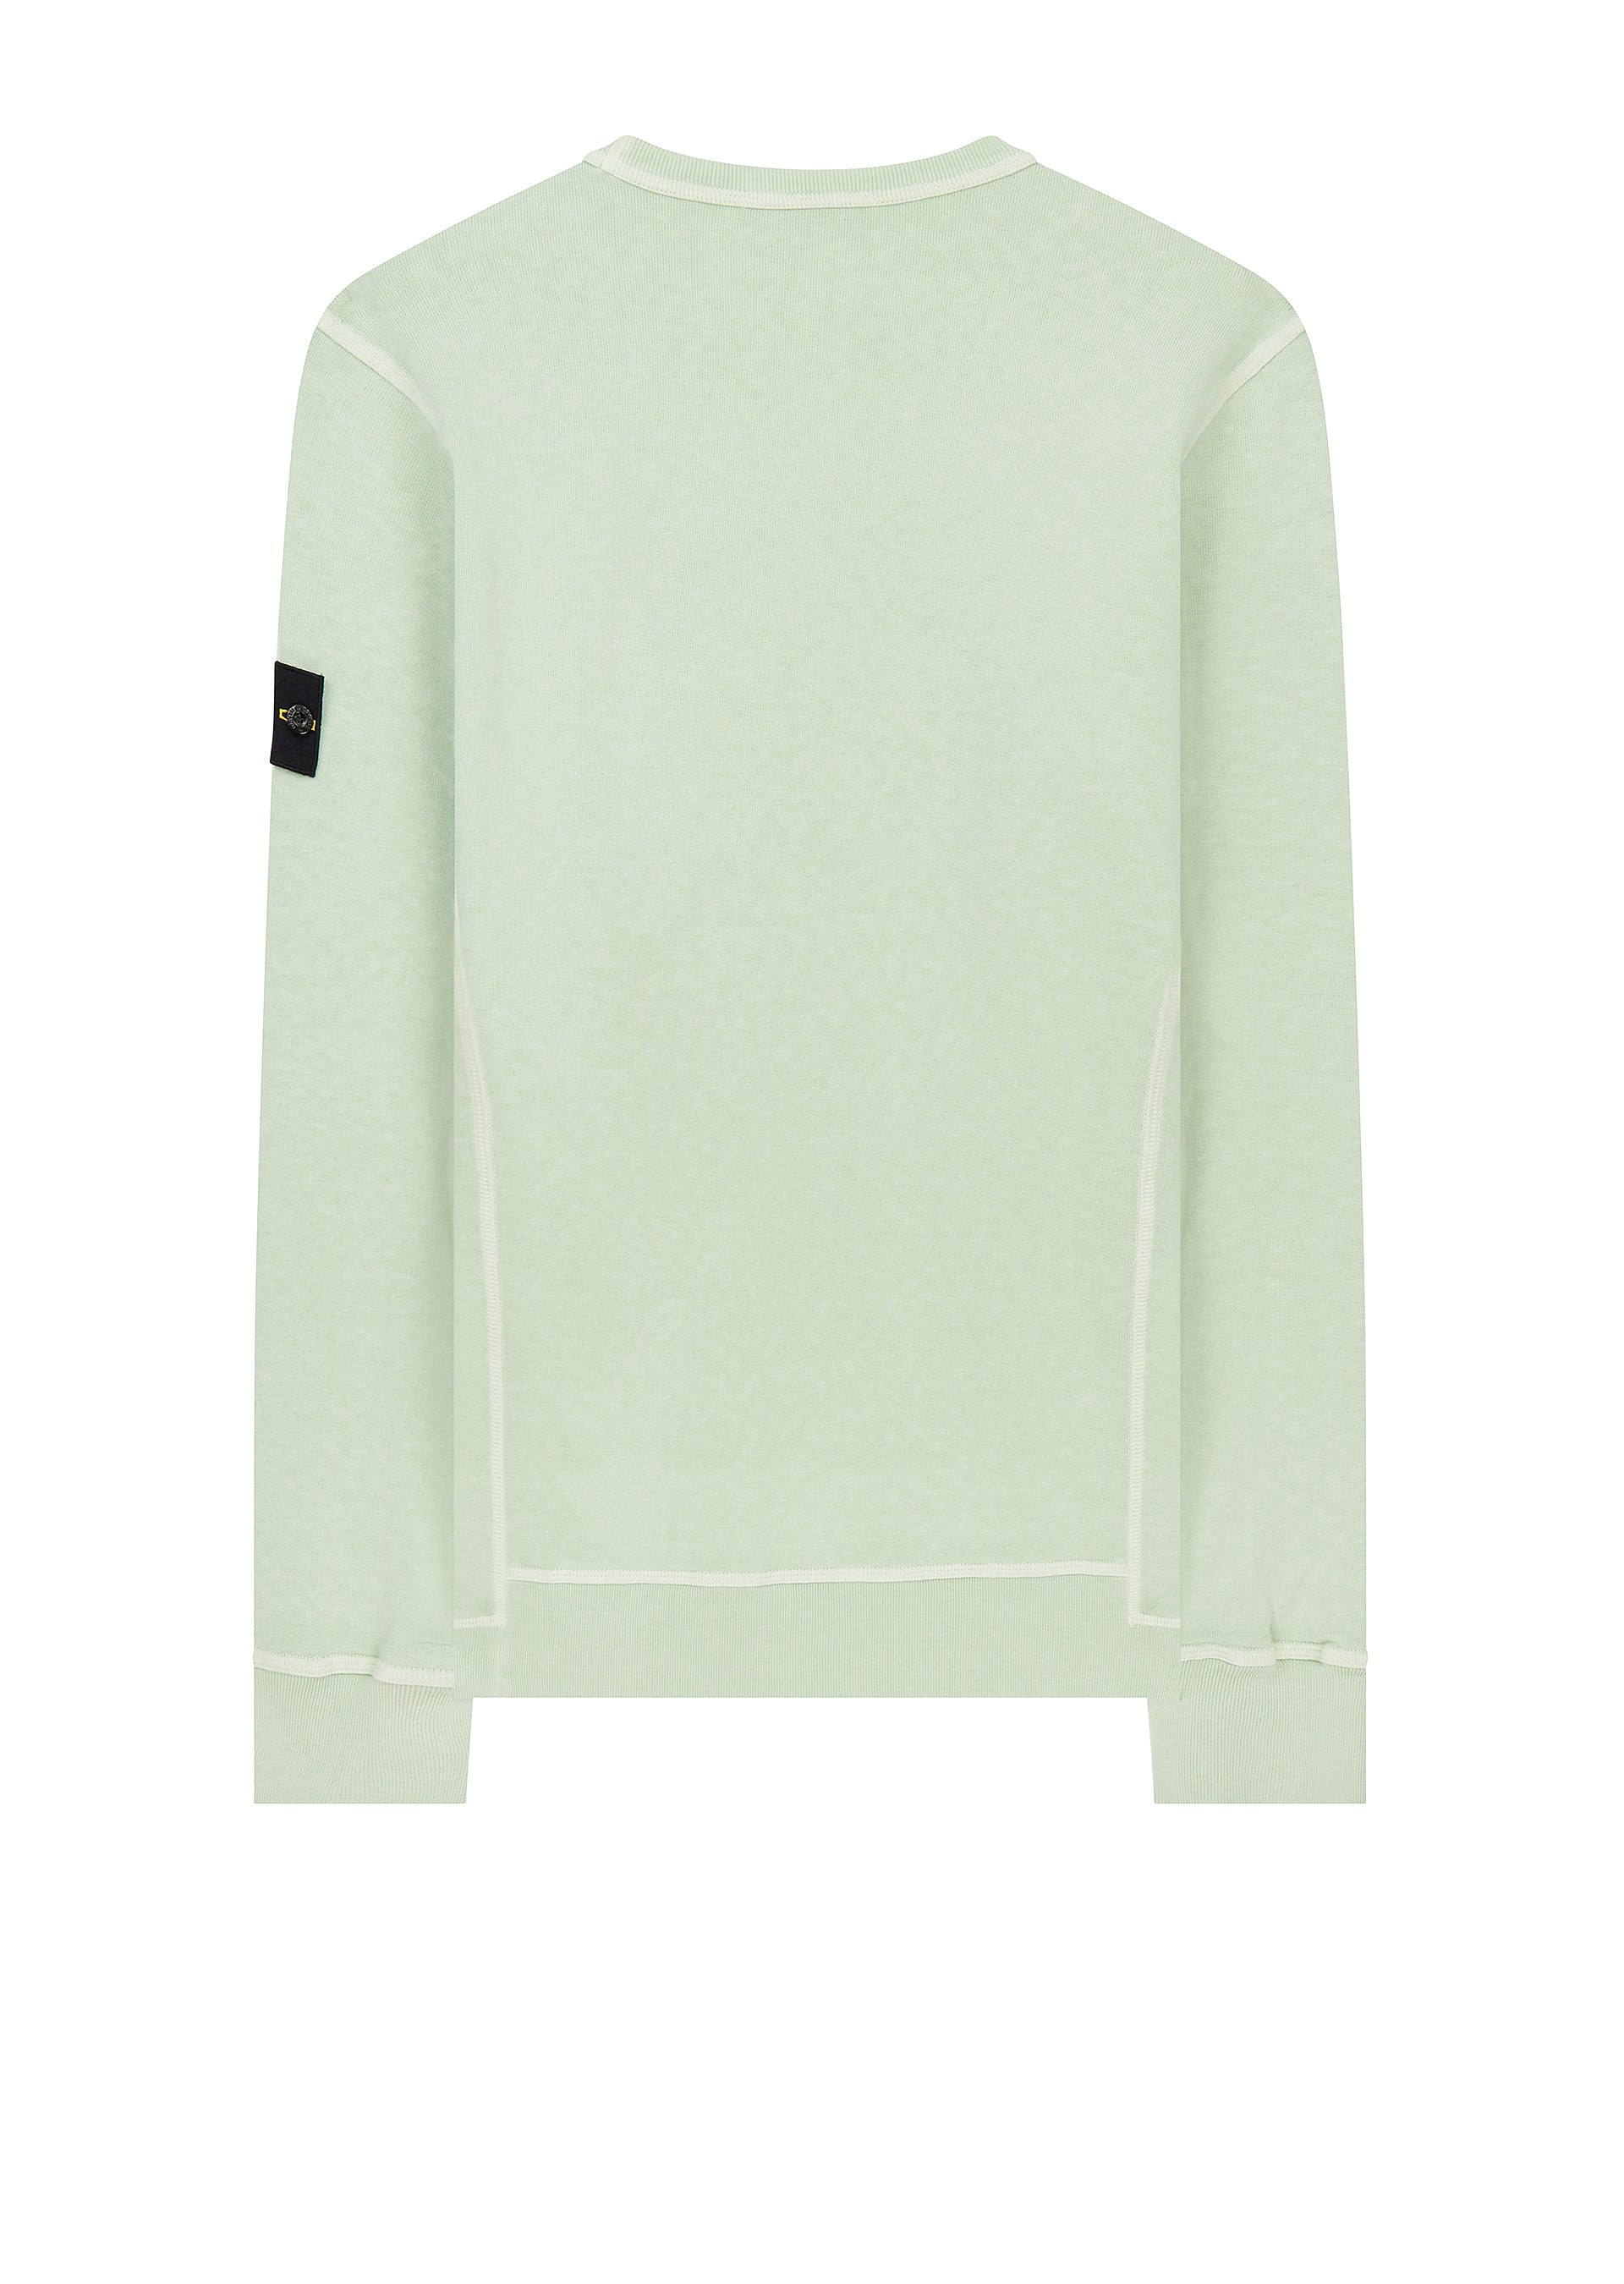 SS18 Stone Island T.Co+Old Effect Sweatshirt in Green | 18montrose